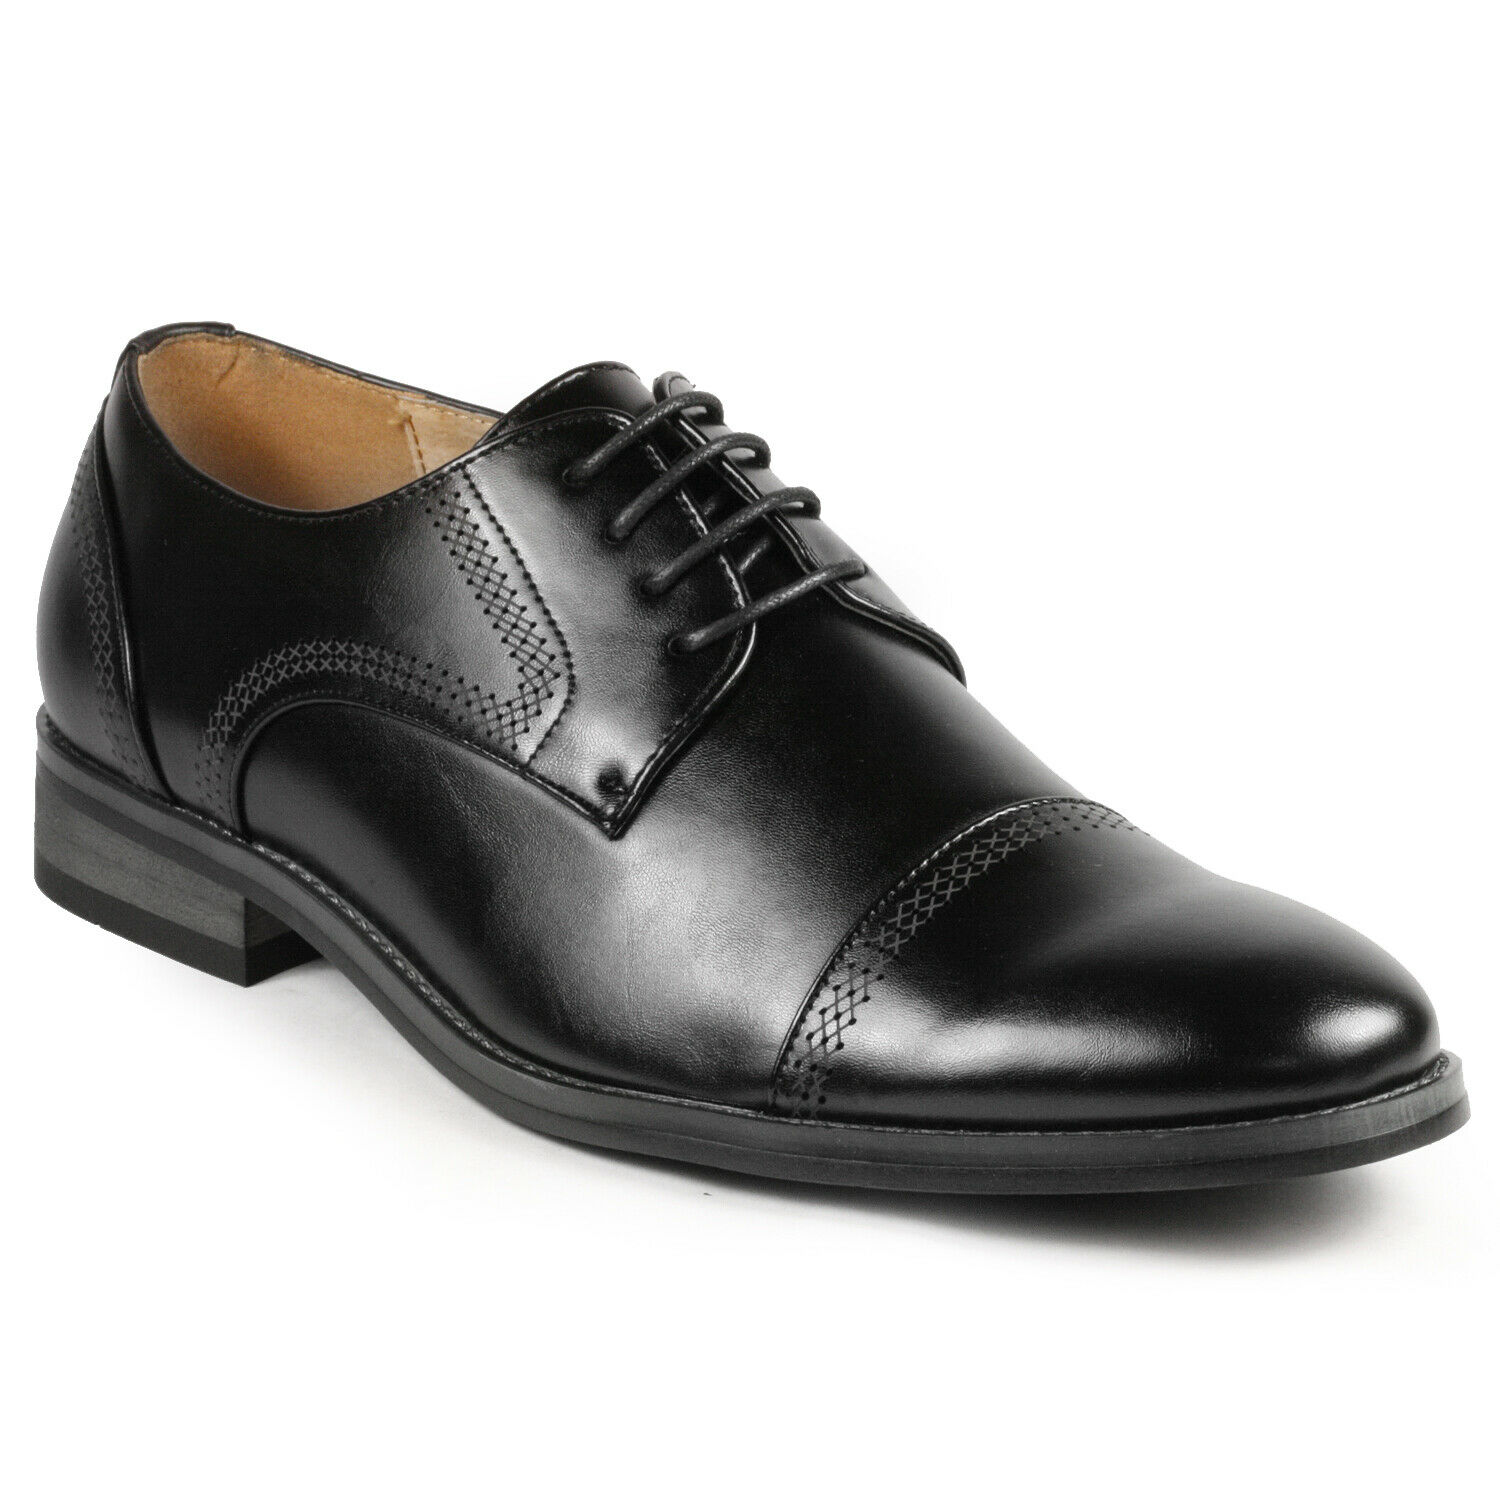 Black Men's Cap Toe Lace Up Oxford Classic Dress Shoe